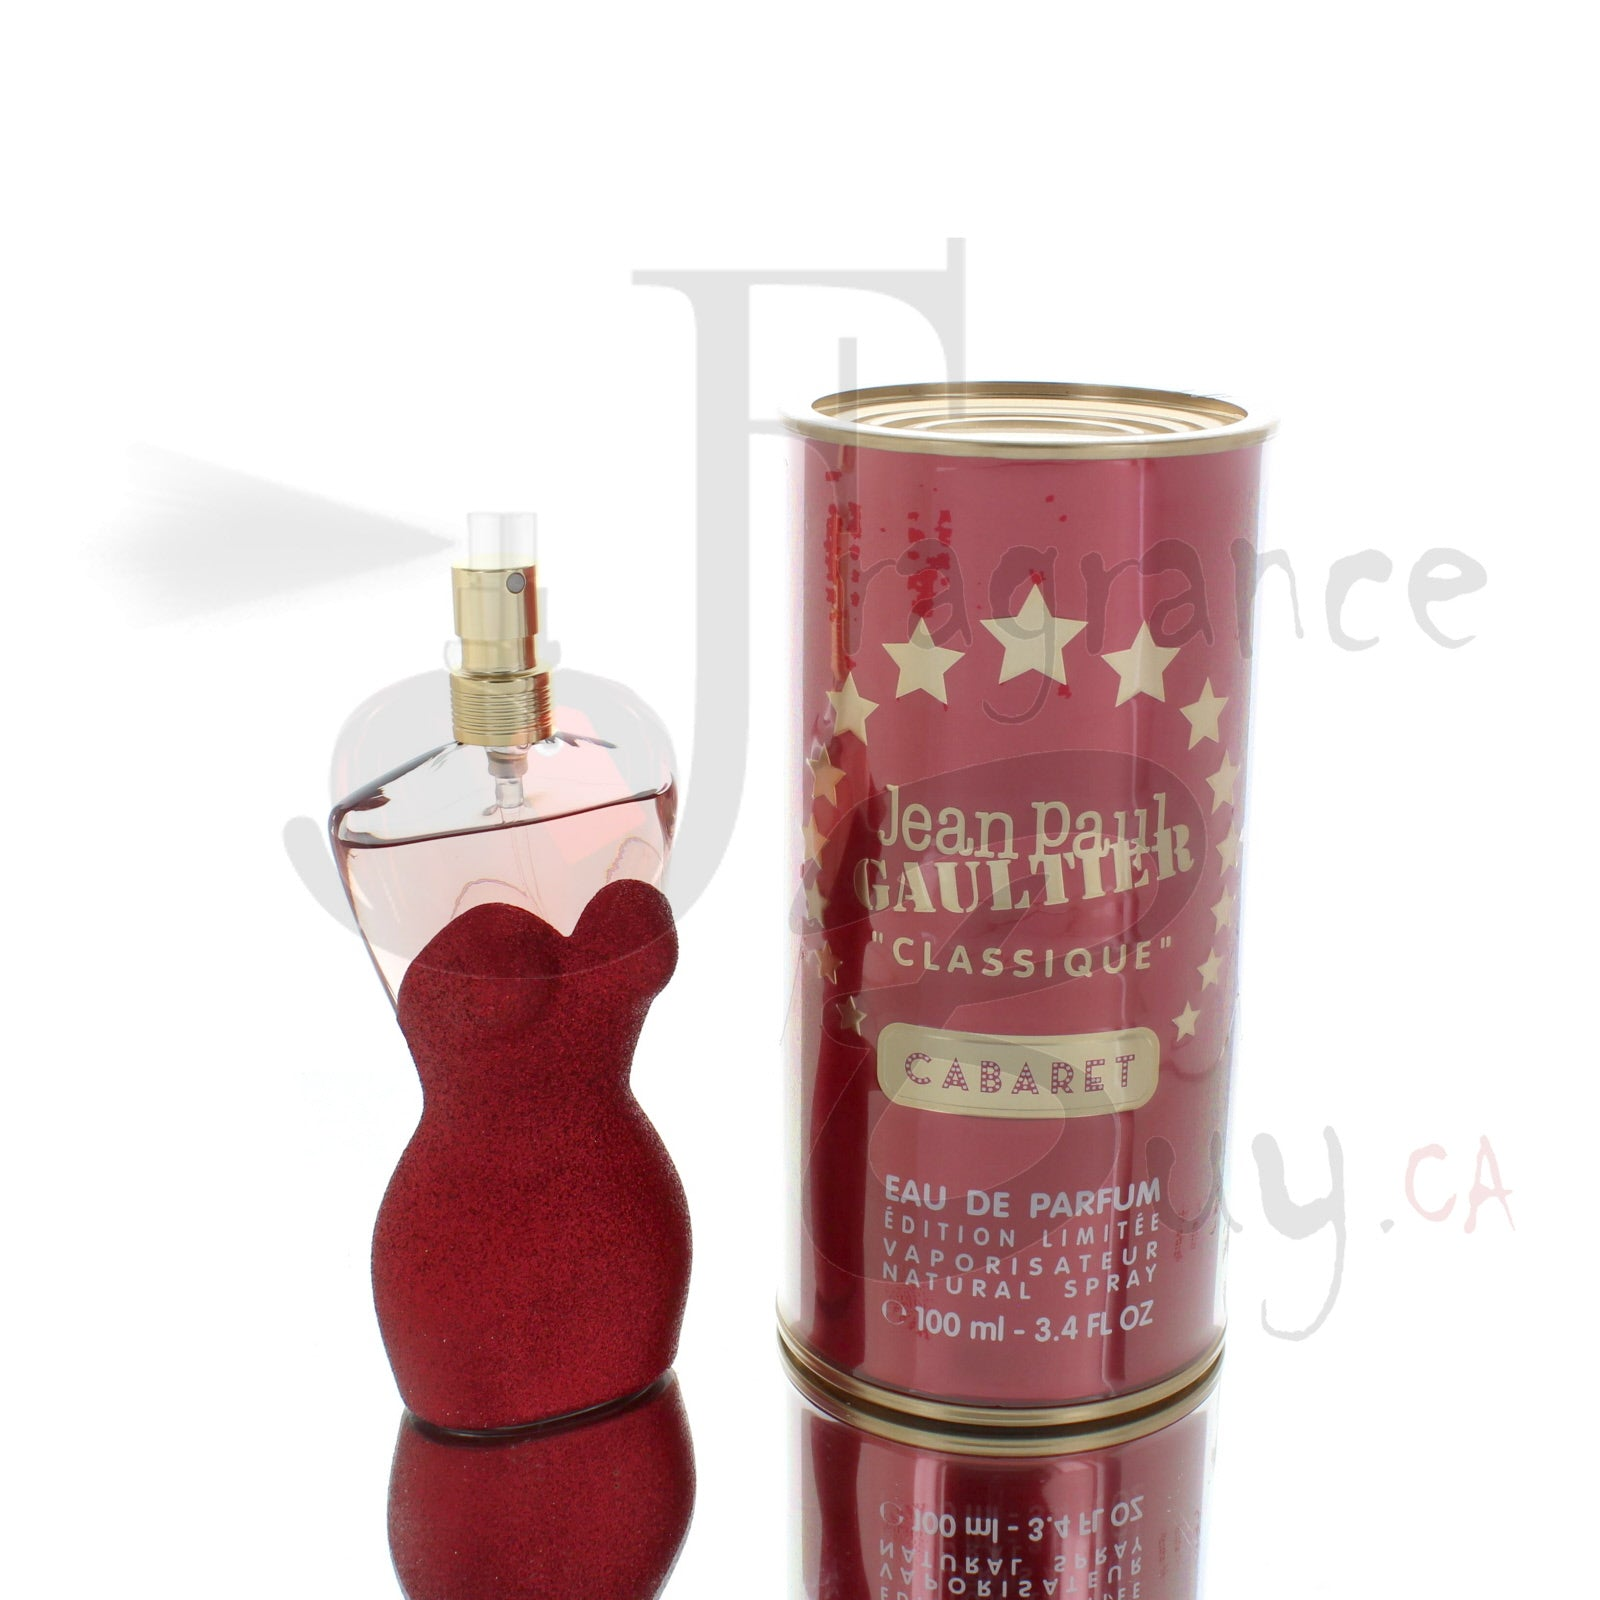 Fragrancebuy Ca Jean Paul Gaultier Classique Cabaret Woman Perfume Best Price Fragrancebuy Canada